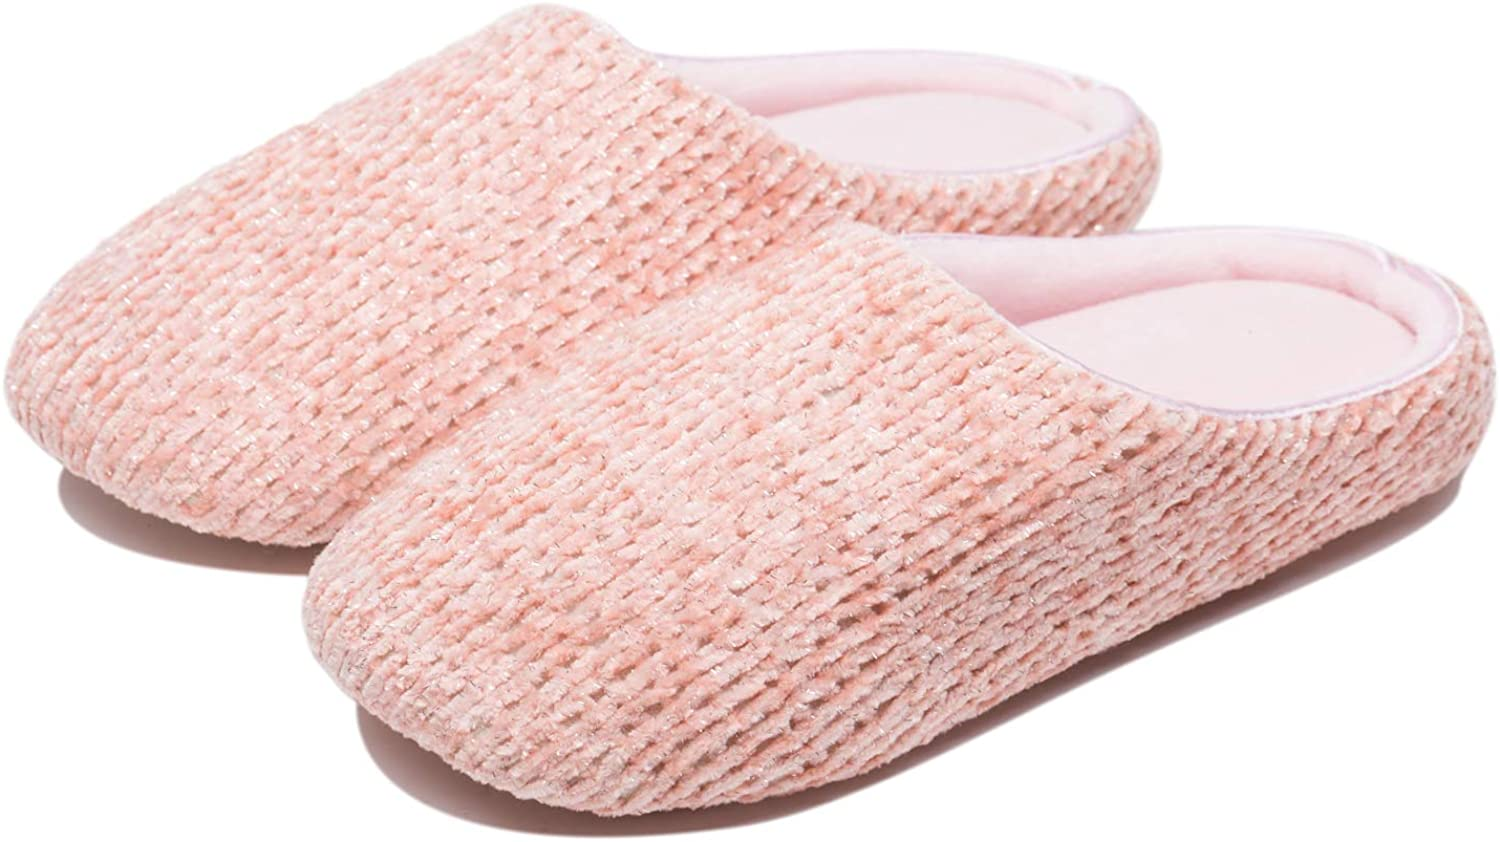 KENSBUY House Slippers for Women Soft Coral Fleece Upper Closed Toe Home shoes Indoor Slipper Pink